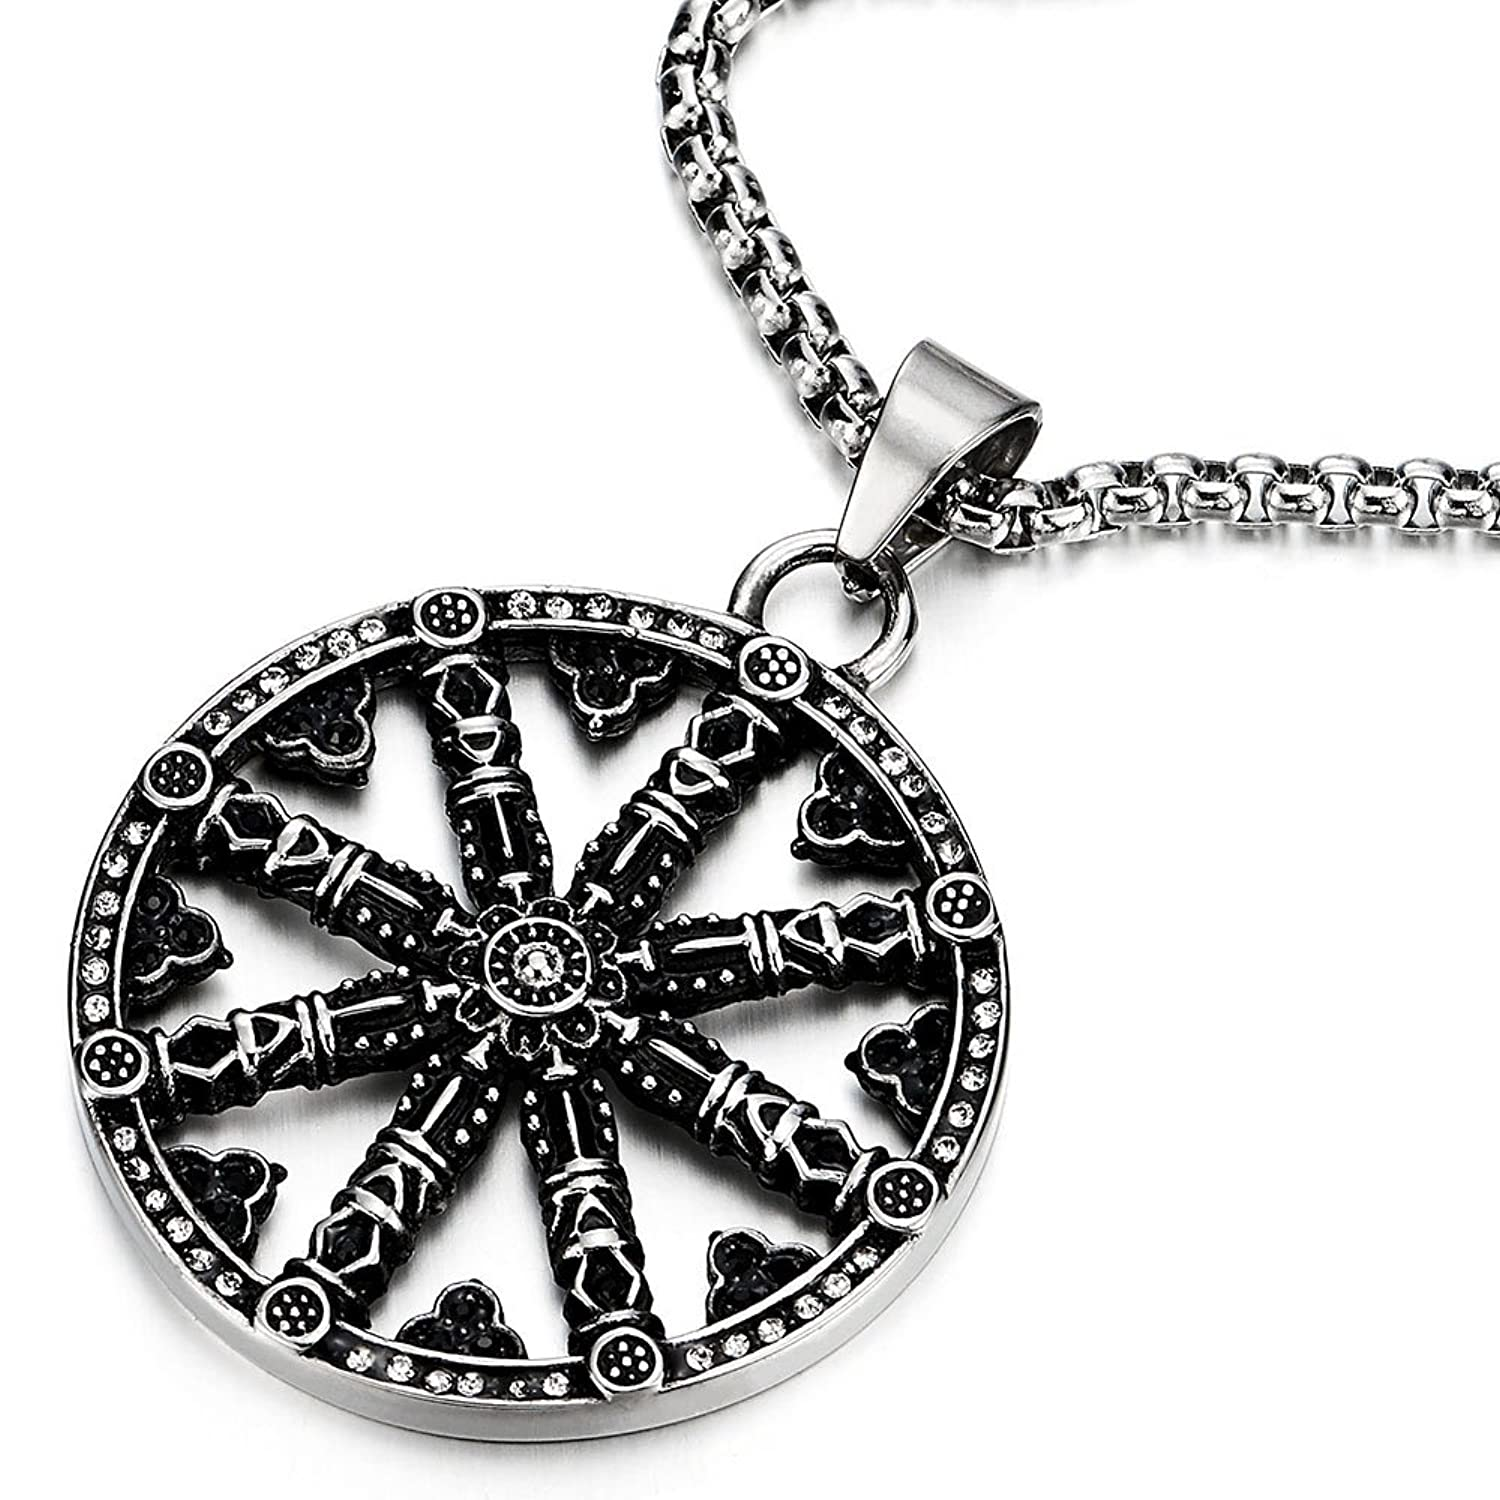 Amazon mens large steel dharma chakra pendant dharma wheel of amazon mens large steel dharma chakra pendant dharma wheel of law buddhist symbol necklace with 30 in chain jewelry aloadofball Choice Image